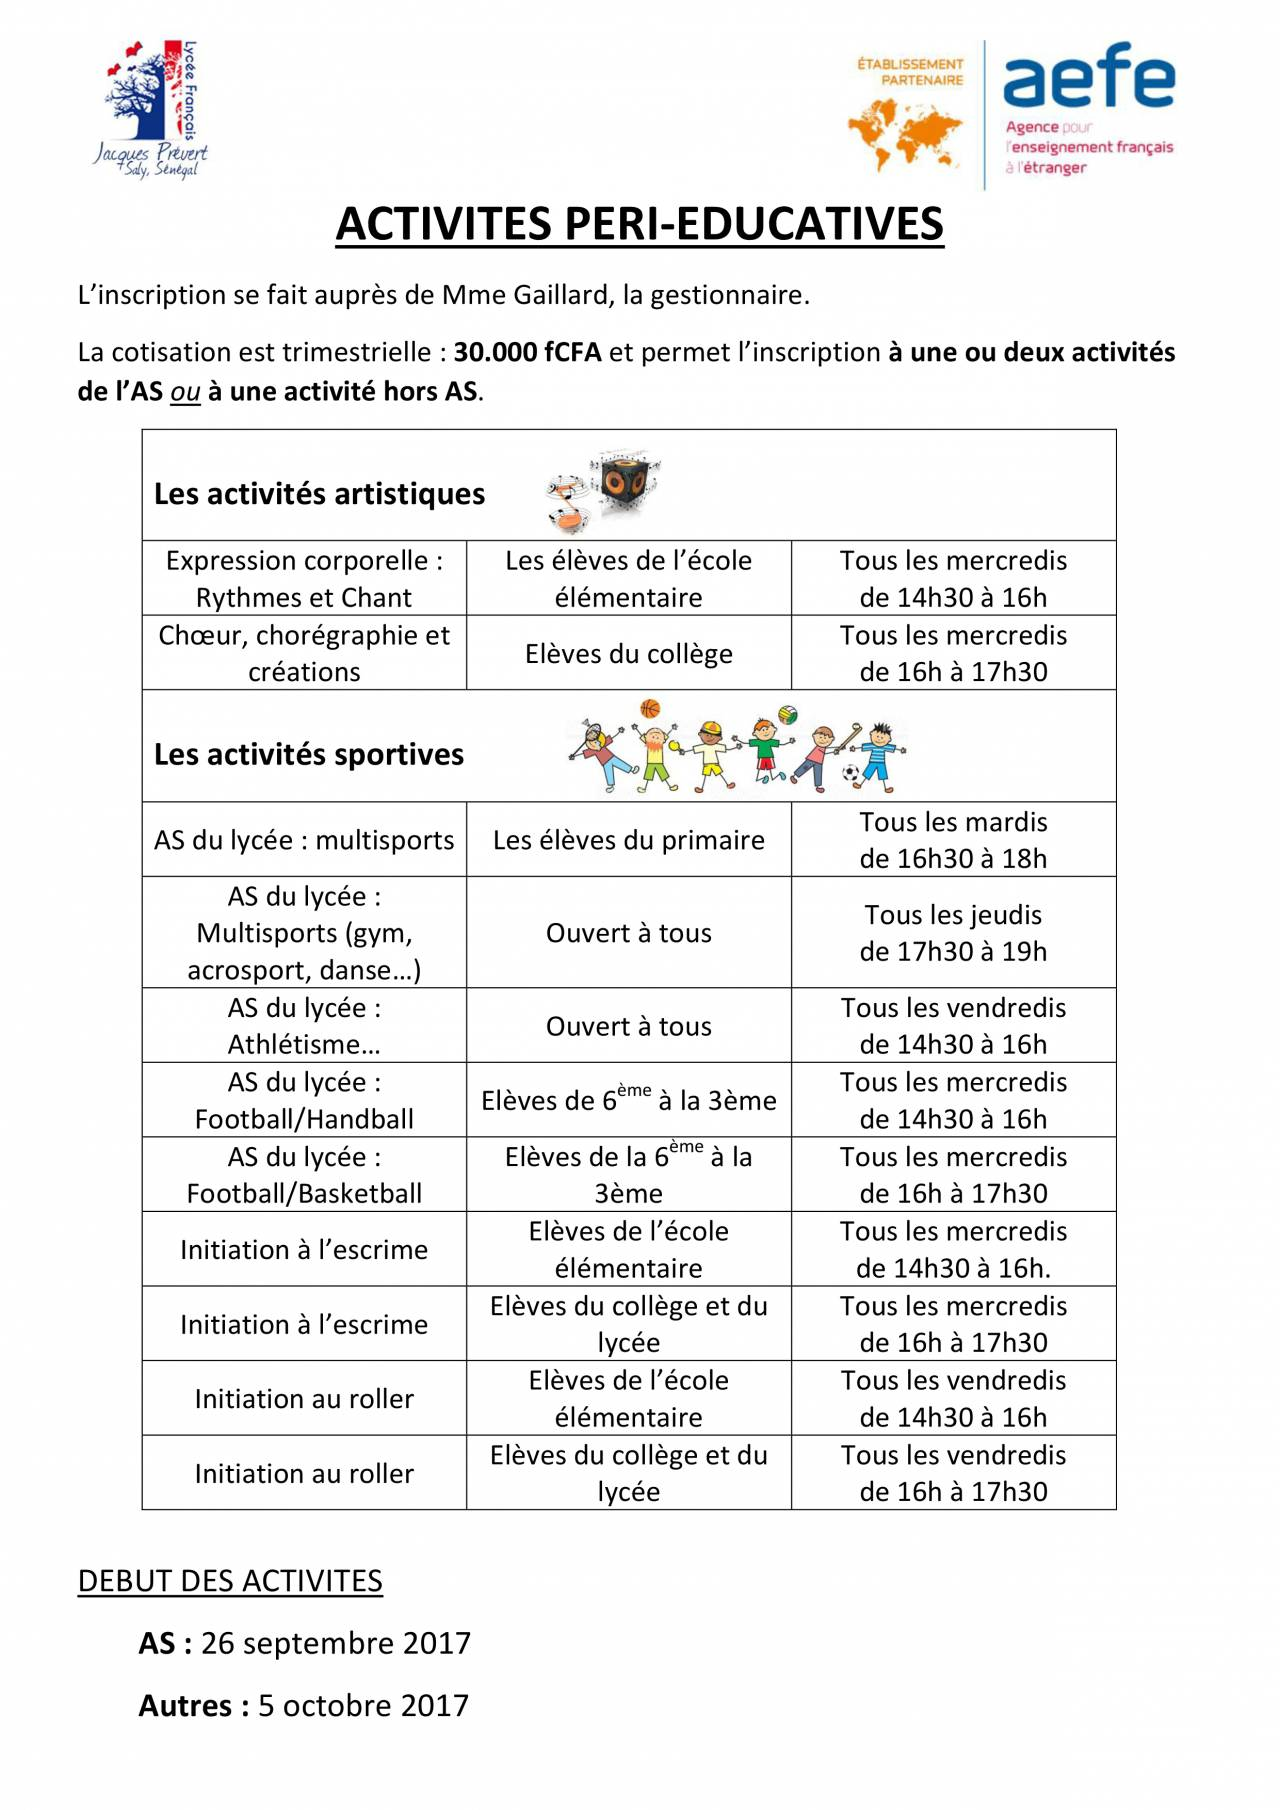 articles/June2019/programme_activites_peri-educatives_2017-18.jpg